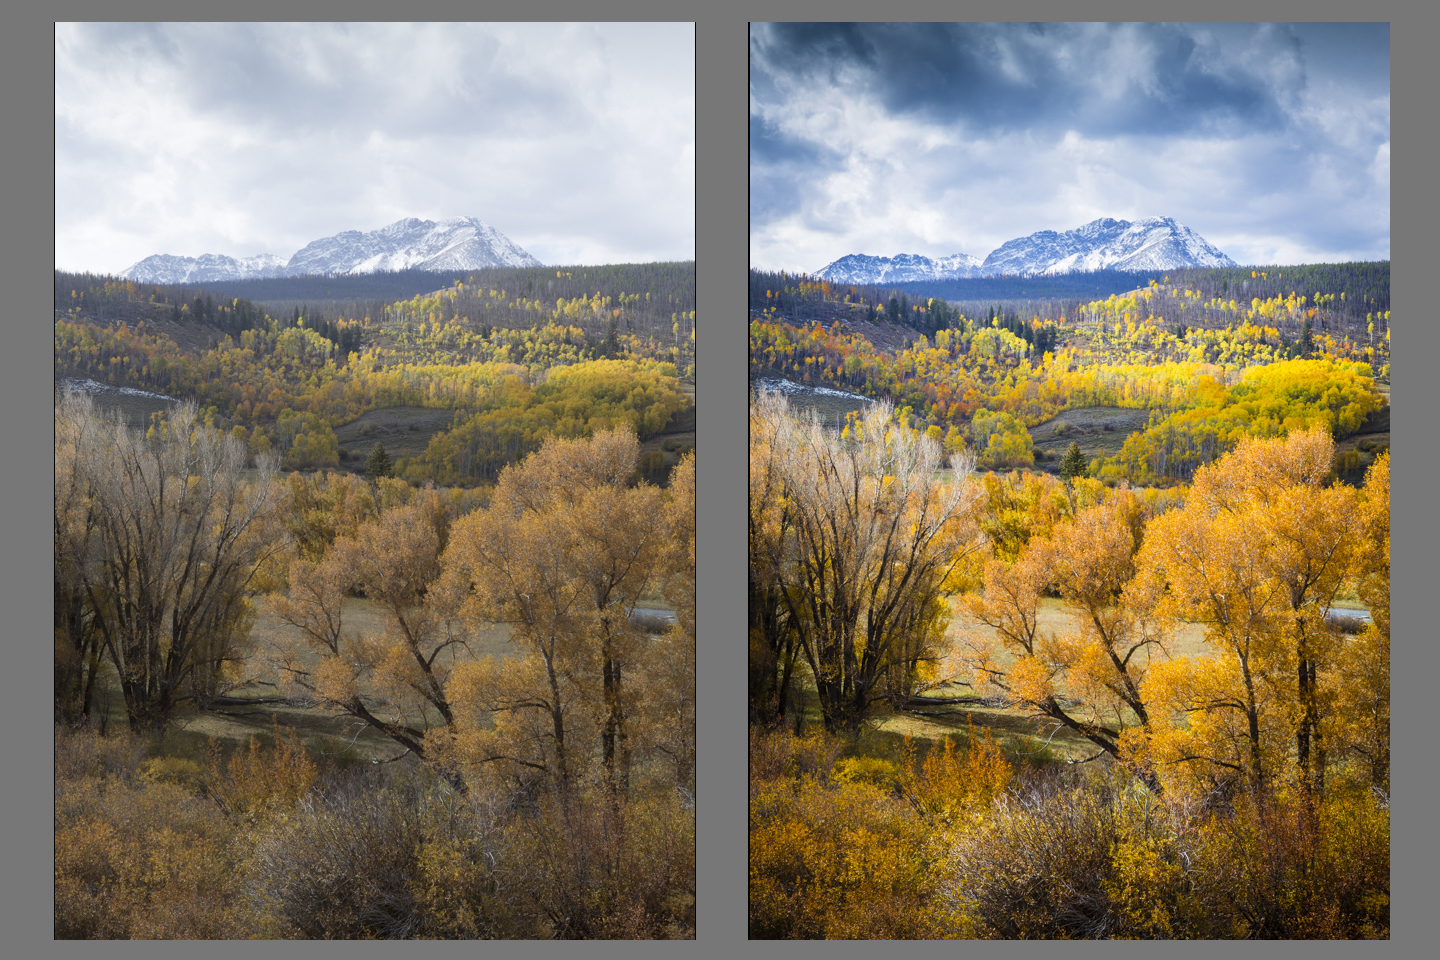 3rd P - Post Processing Tips -